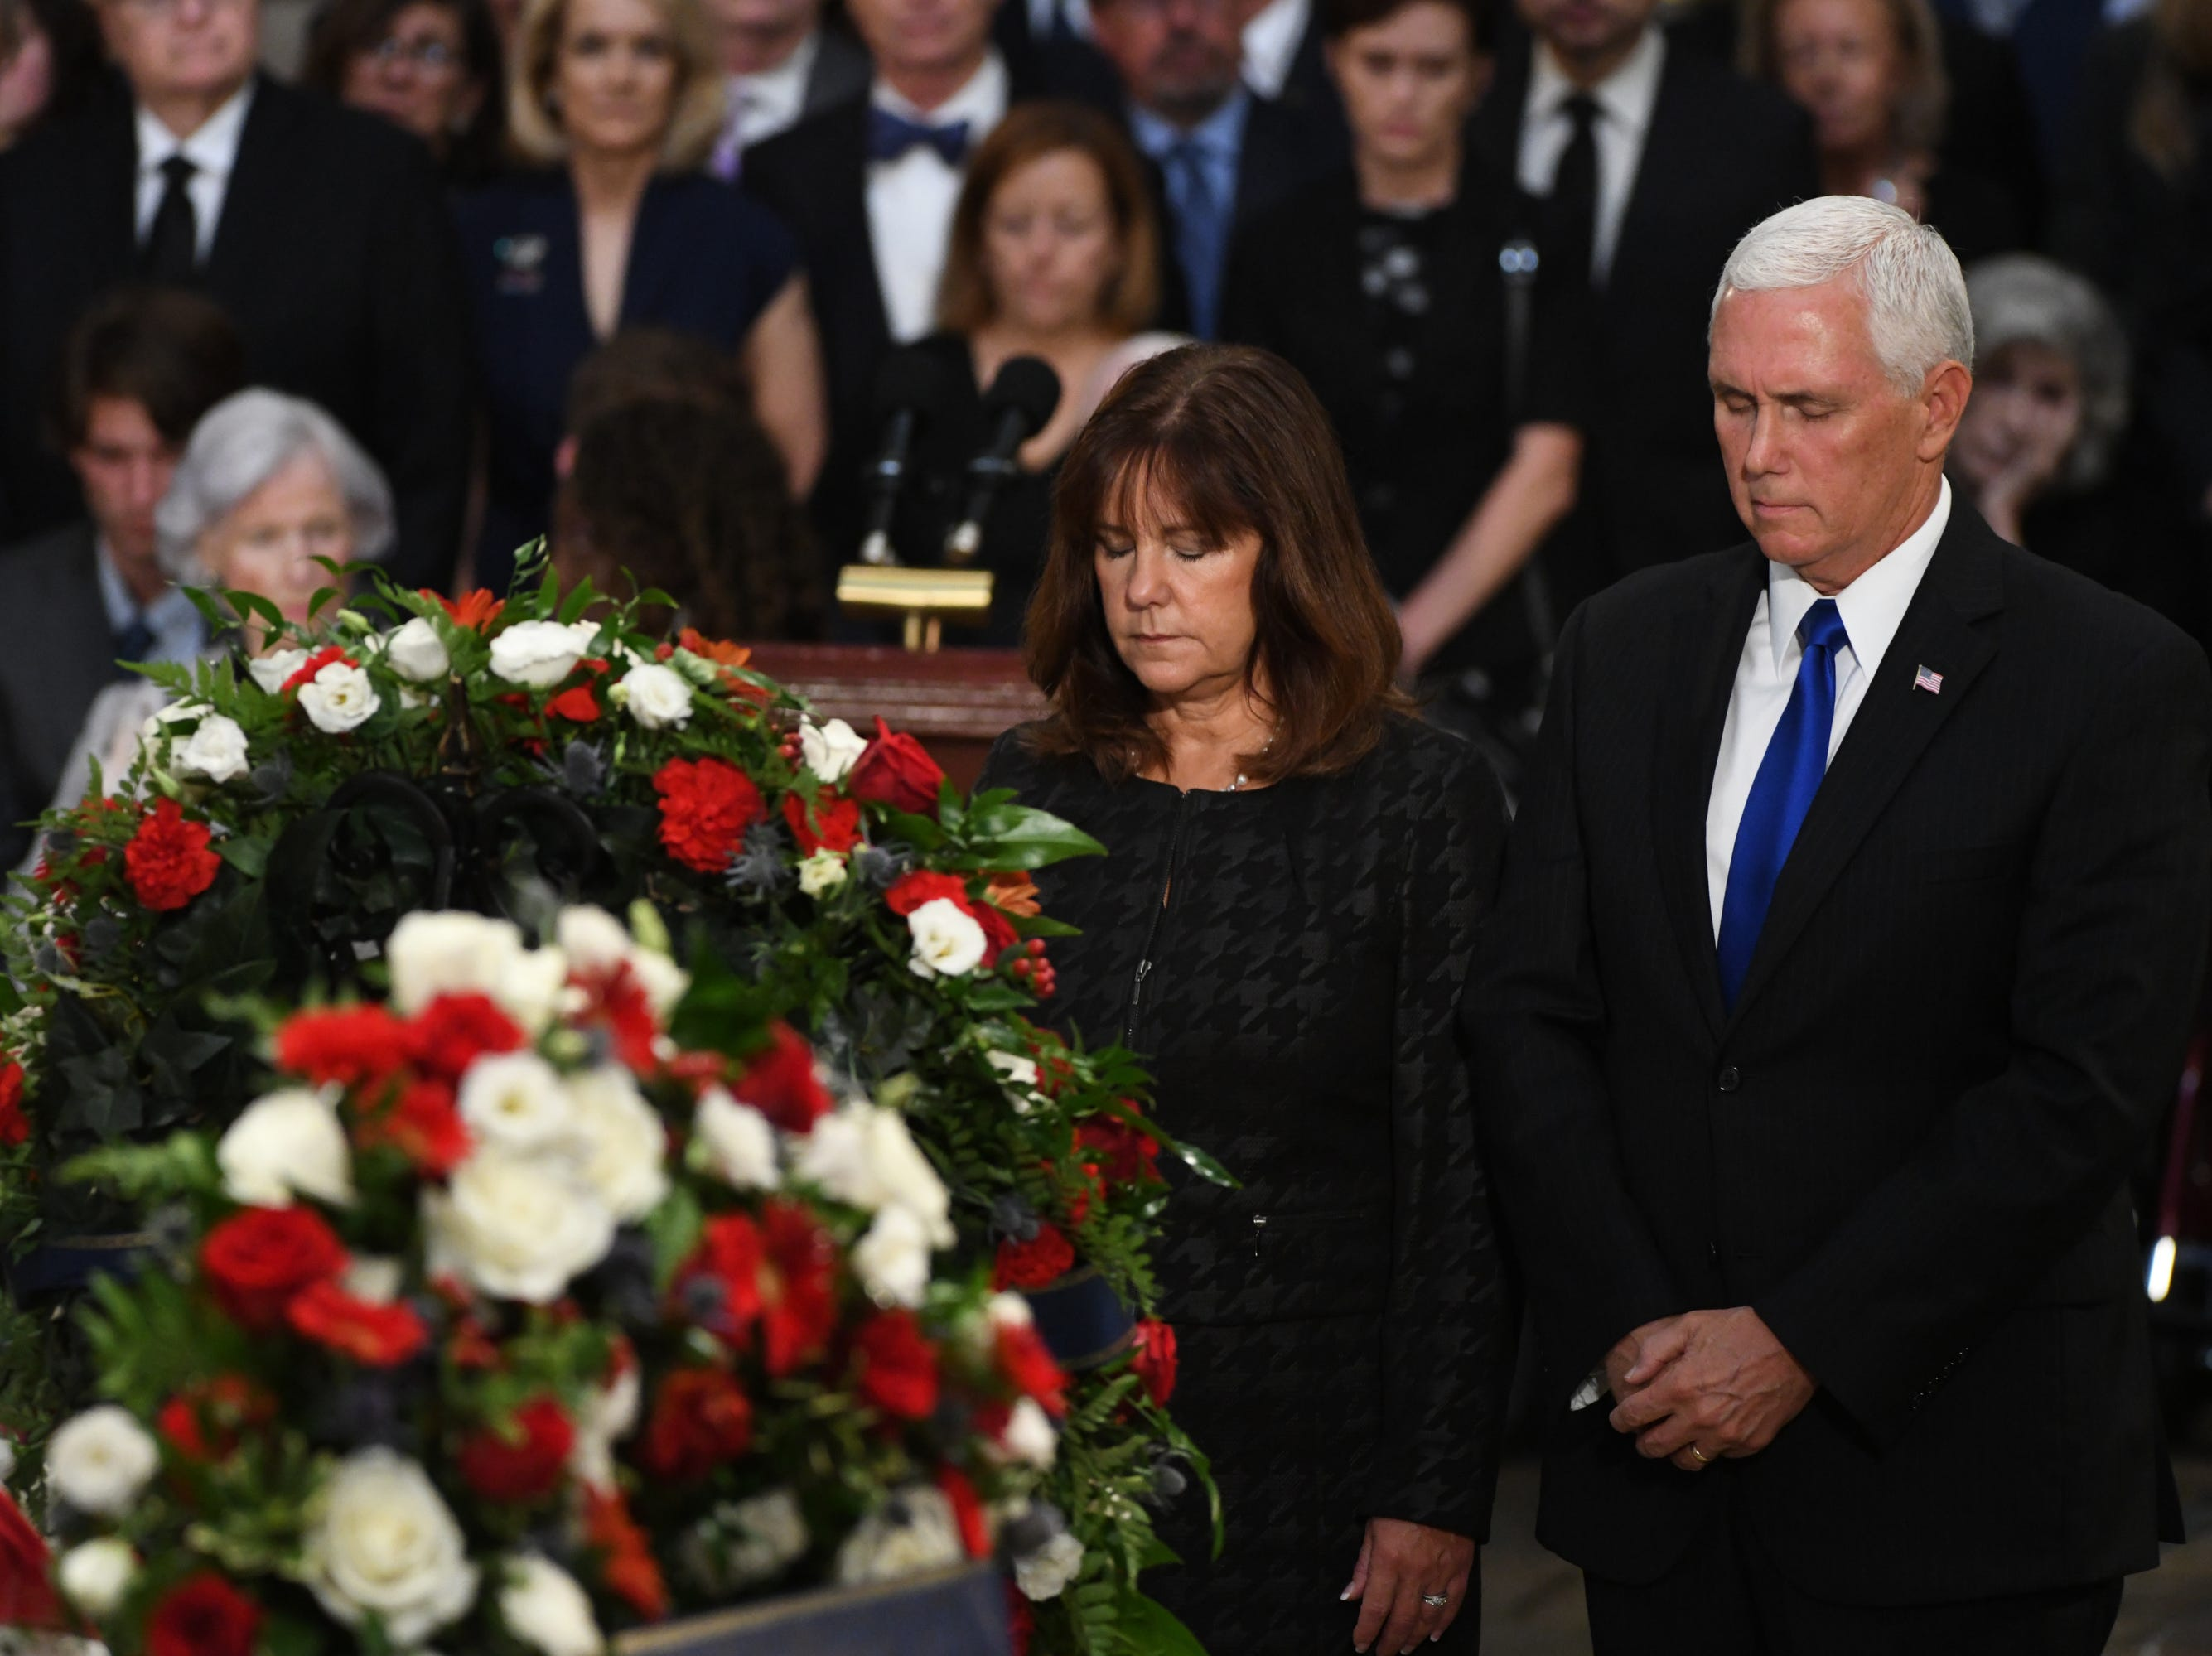 8/31/18 11:20:26 AM -- Washington, DC, U.S.A  -- Vice President Mike Pence and his wife Karen present a wreath on behalf of the Executive Branch as the body of John McCain lies in state at the U.S. Capitol in Washington on Aug. 31, 2018 in Washington. Sen. McCain died on Aug. 25. --    Photo by Jasper Colt, USA TODAY Staff